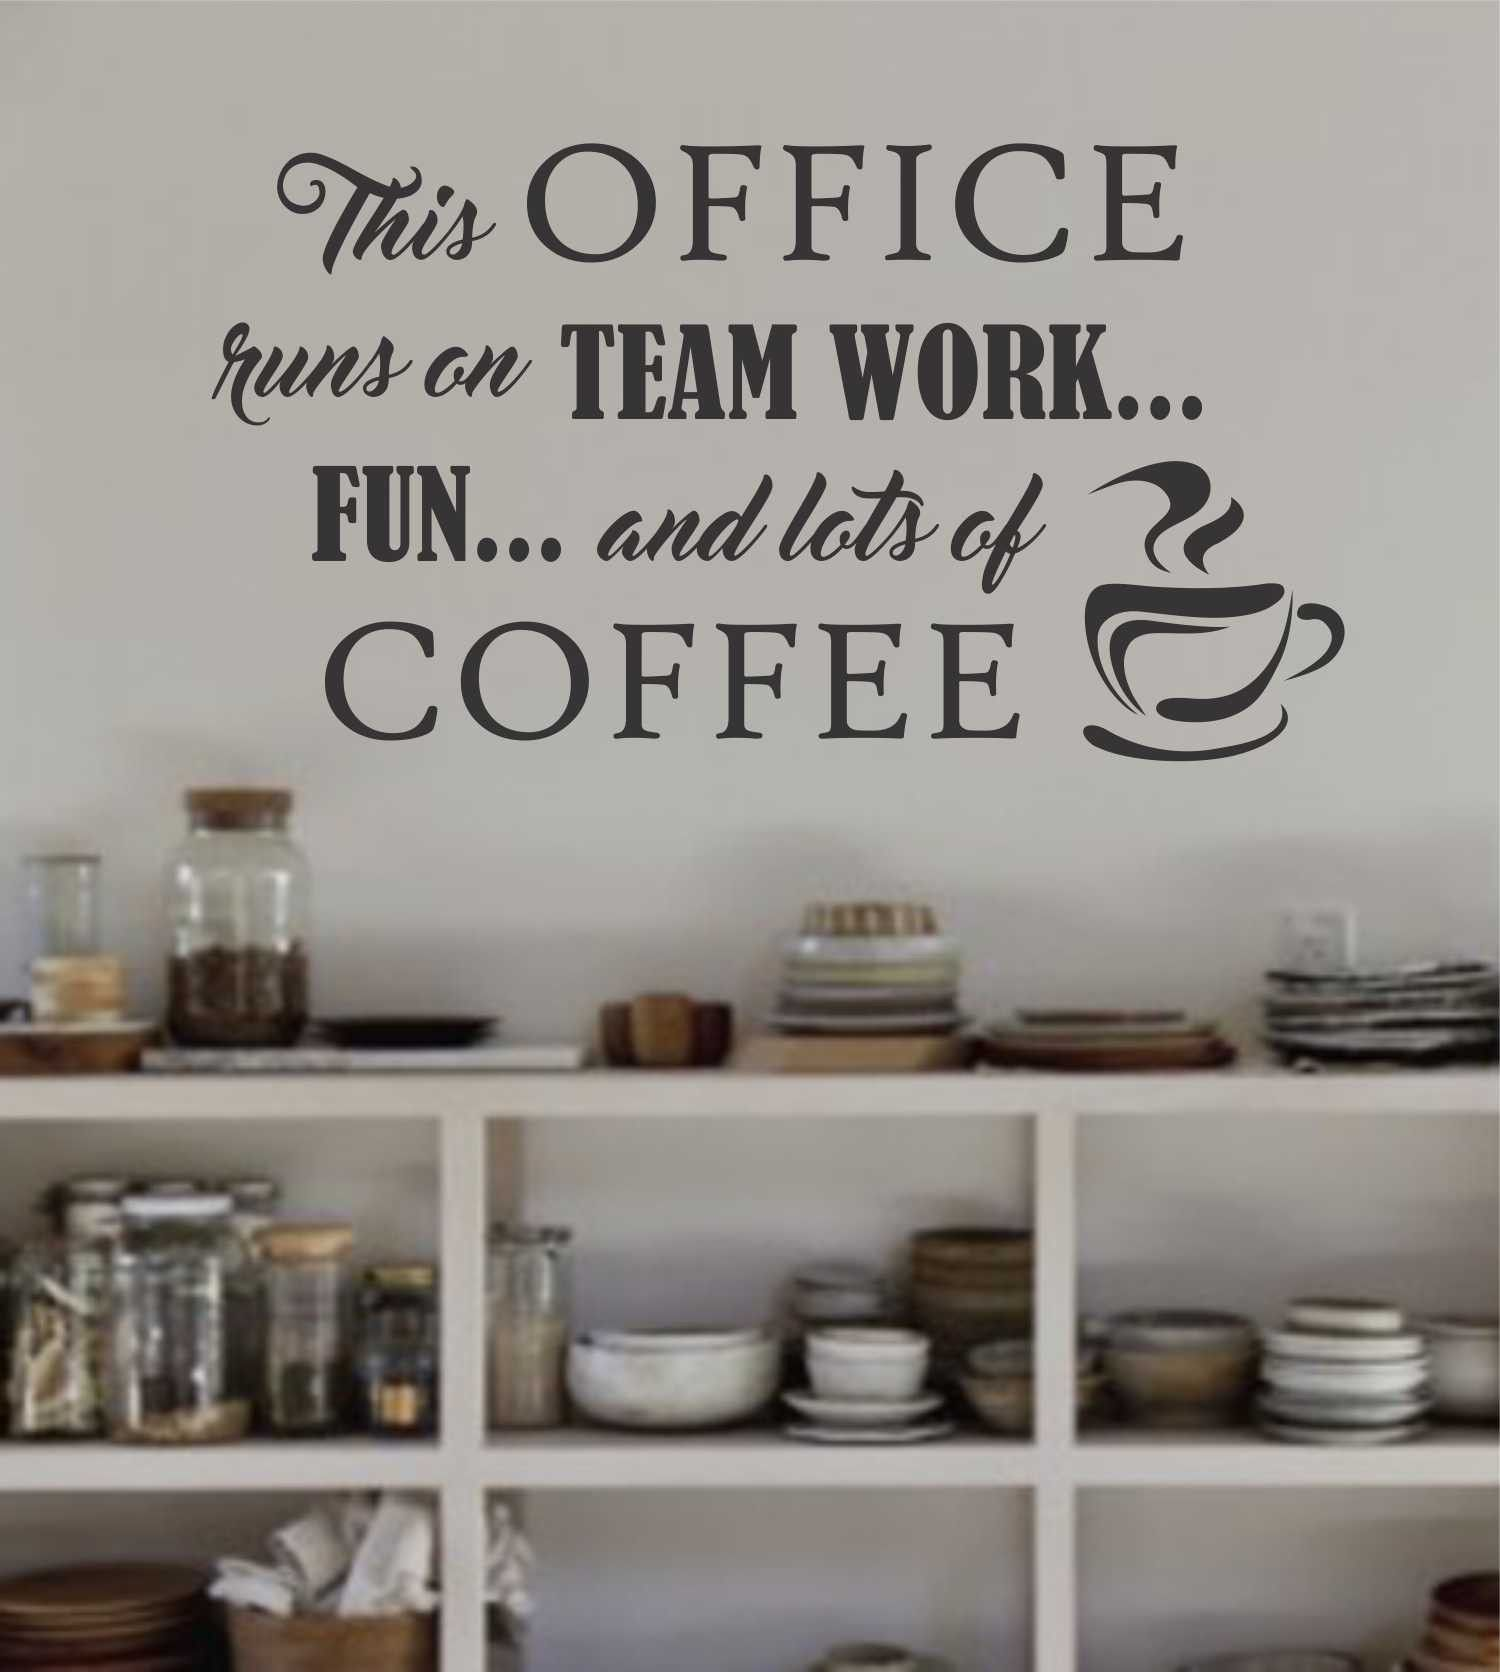 Office Runs On Coffee Vinyl Wall Decal Breakroom Lettering - Vinyl wall decal adhesive